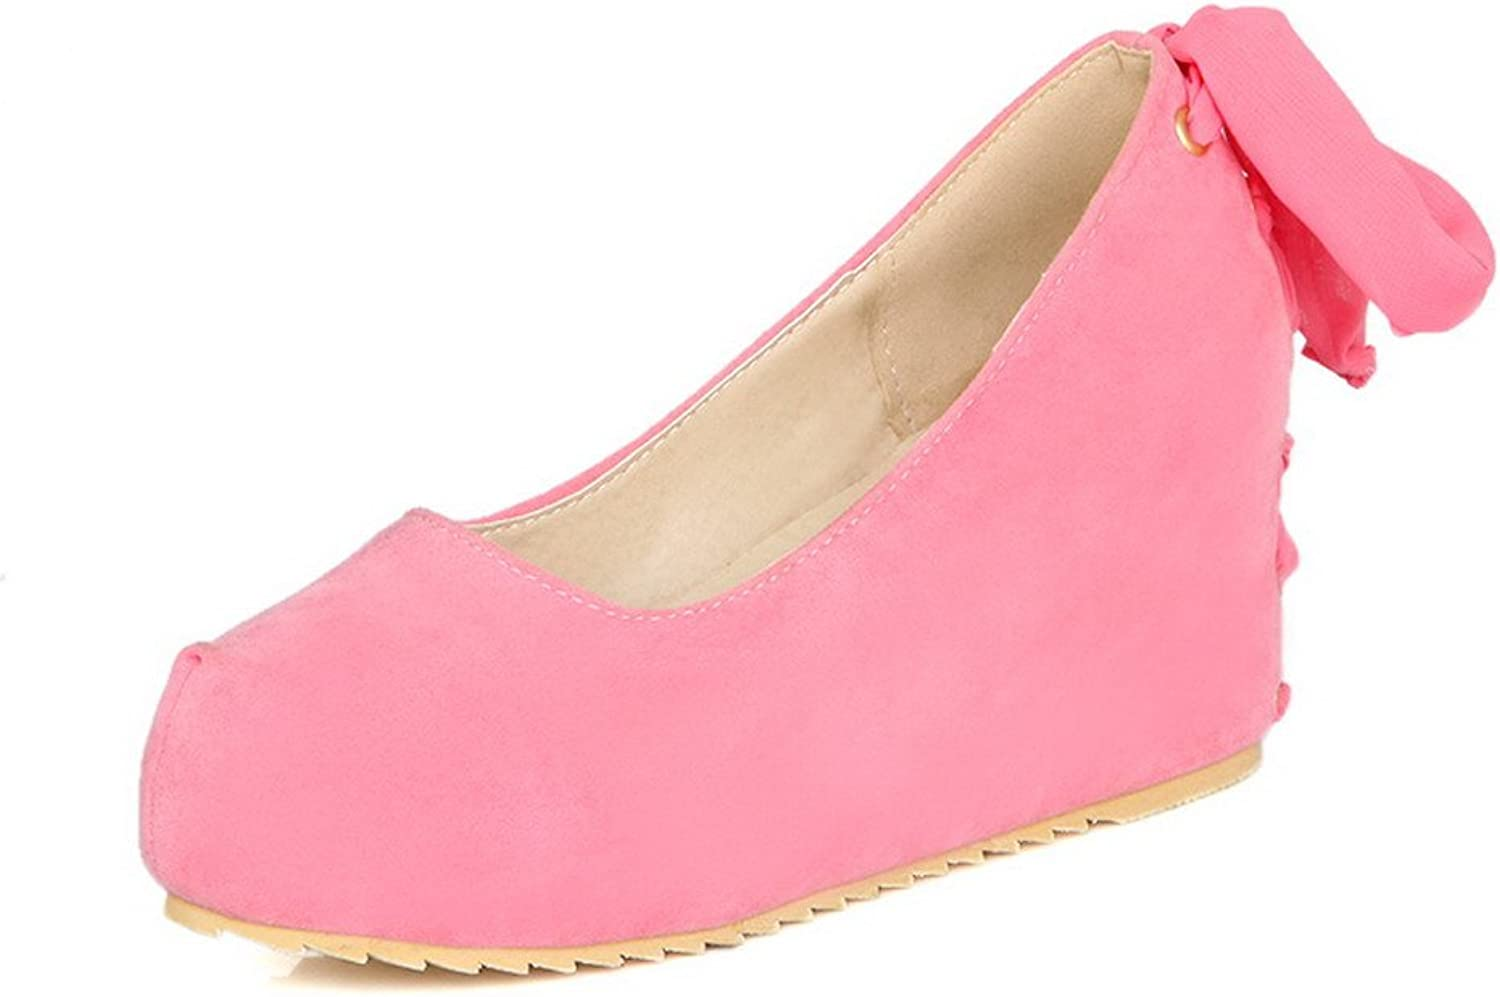 WeenFashion Women's High Heels Solid Pull-On Round Closed Toe Pumps-shoes